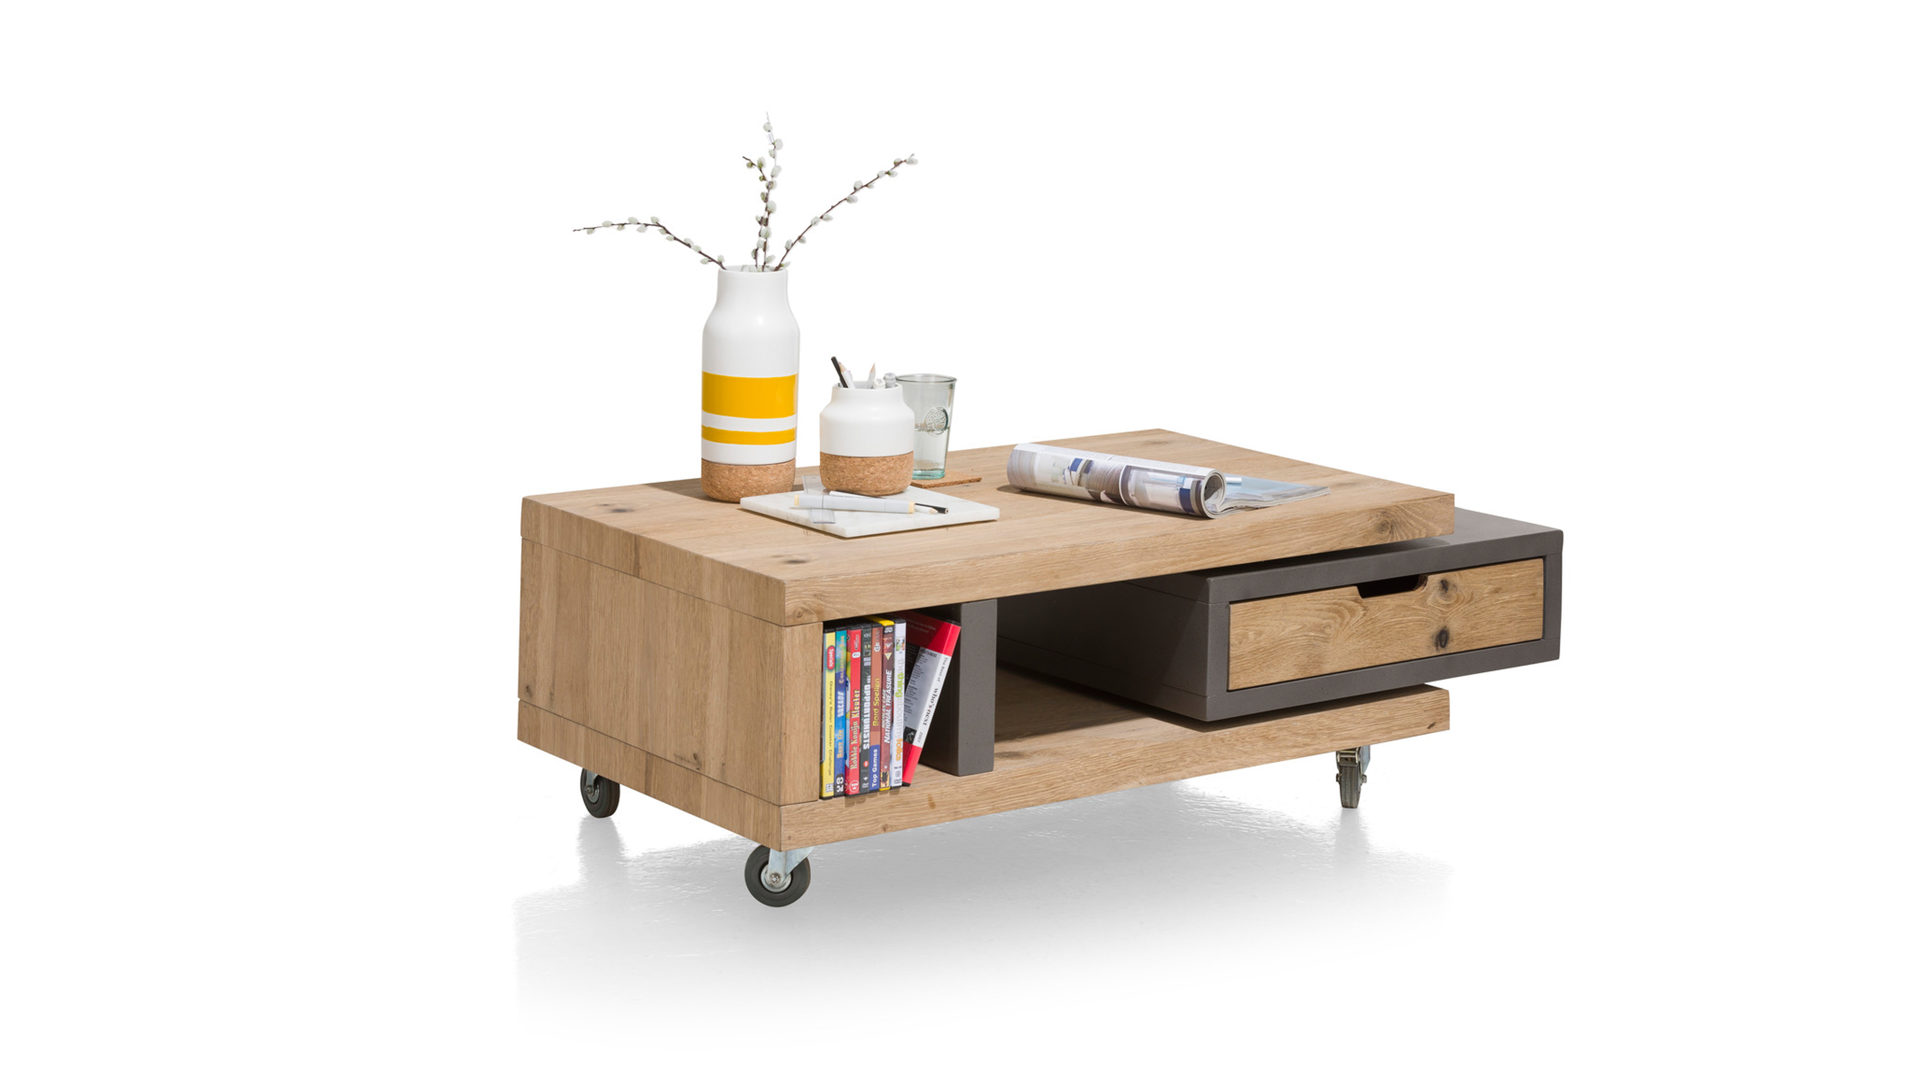 Habufa Mallorca Couchtisch Esszimmer Sthle Habufa Perfect Woods Trends Highboard Kommode Im